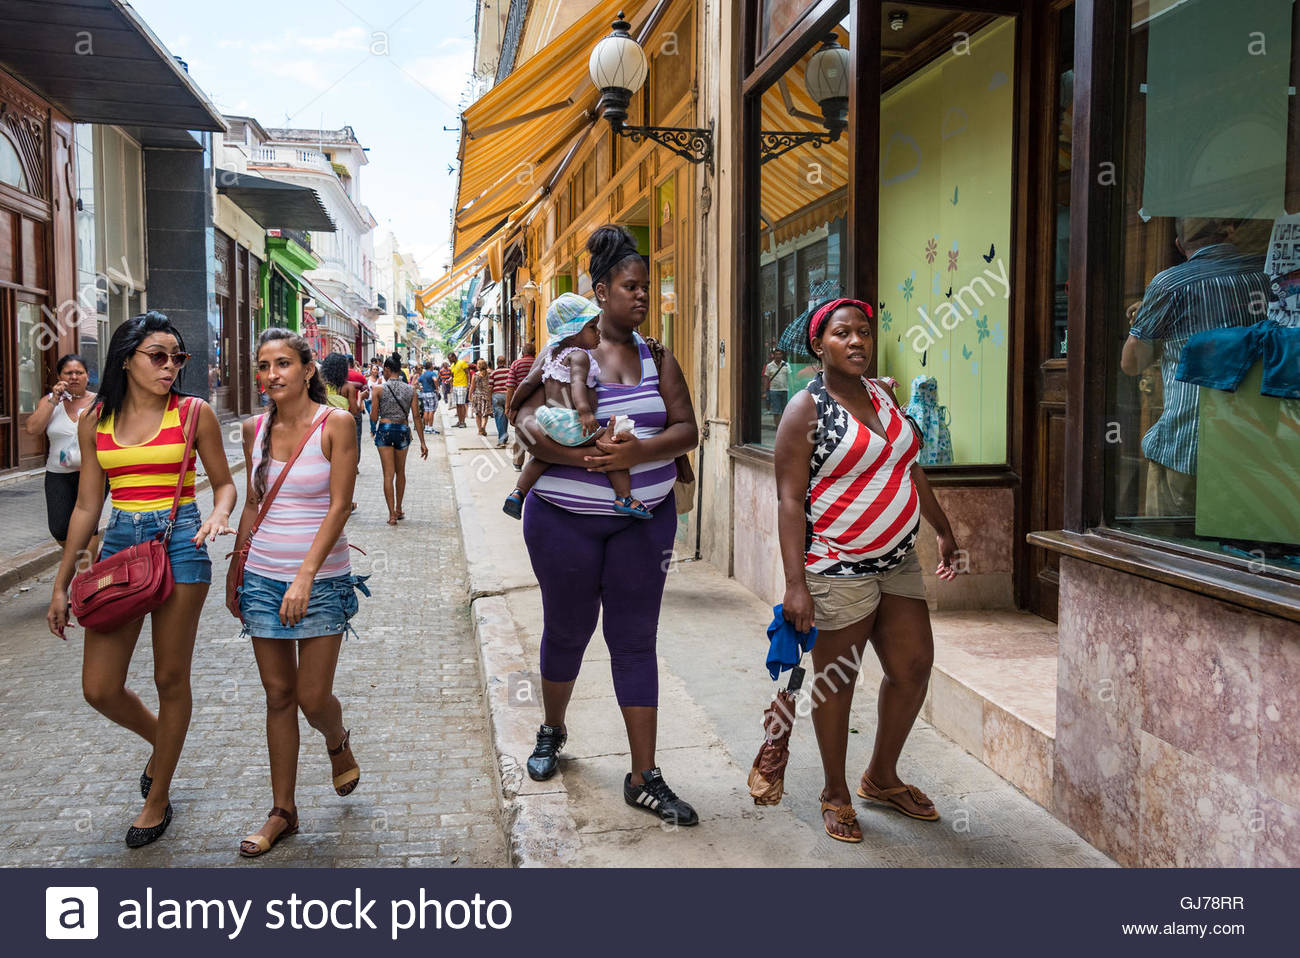 Woman wearing a U.S.A flag in a Cuban everyday scene. After the thaw of relations between the two countries American - Stock Image